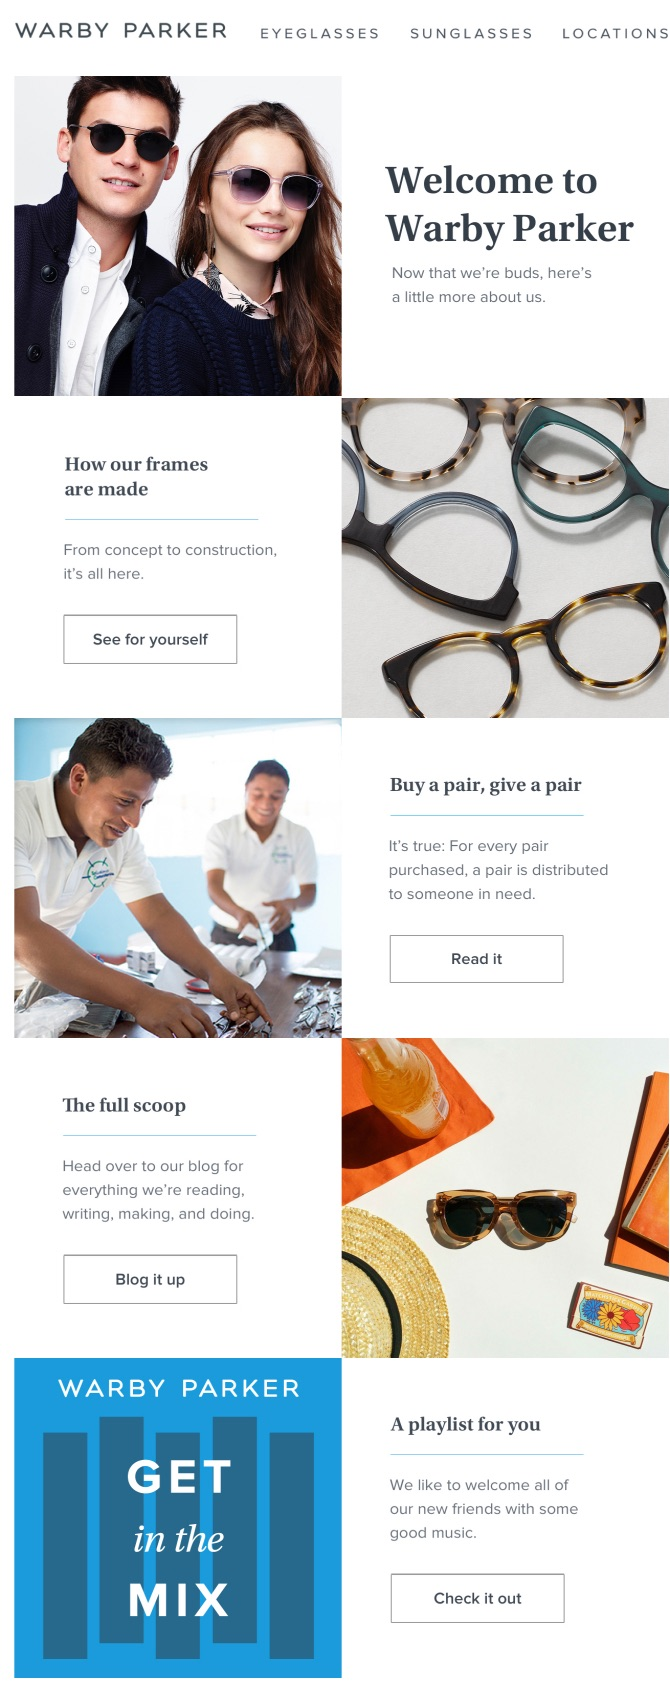 This welcome email introduces Warby Parker's newest subscribers to their brand and shares the company's value.